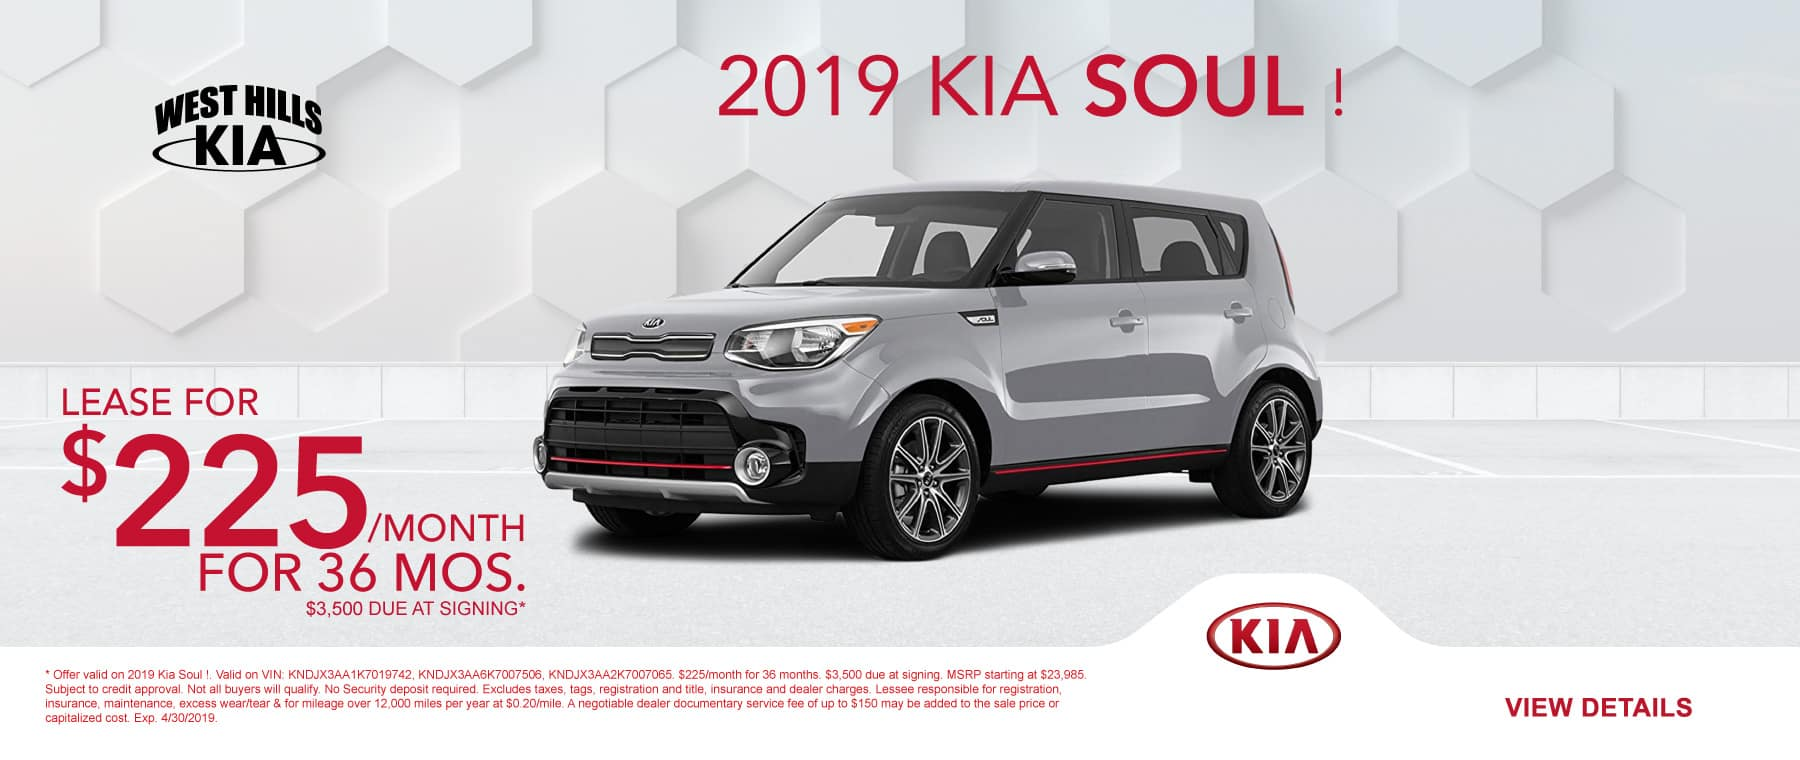 2019 Kia Soul ! $225/month for 36 months  $3,500 Due at Signing   Offer valid on 2019 Kia Soul !. Valid on VIN: KNDJX3AA1K7019742, KNDJX3AA6K7007506, KNDJX3AA2K7007065. $225/month for 36 months. $3,500 due at signing. MSRP starting at $23,985. Subject to credit approval. Not all buyers will qualify. No Security deposit required. Excludes taxes, tags, registration and title, insurance and dealer charges. Lessee responsible for registration, insurance, maintenance, excess wear/tear & for mileage over 12,000 miles per year at $0.20/mile. A negotiable dealer documentary service fee of up to $150 may be added to the sale price or capitalized cost. Exp. 4/30/2019.